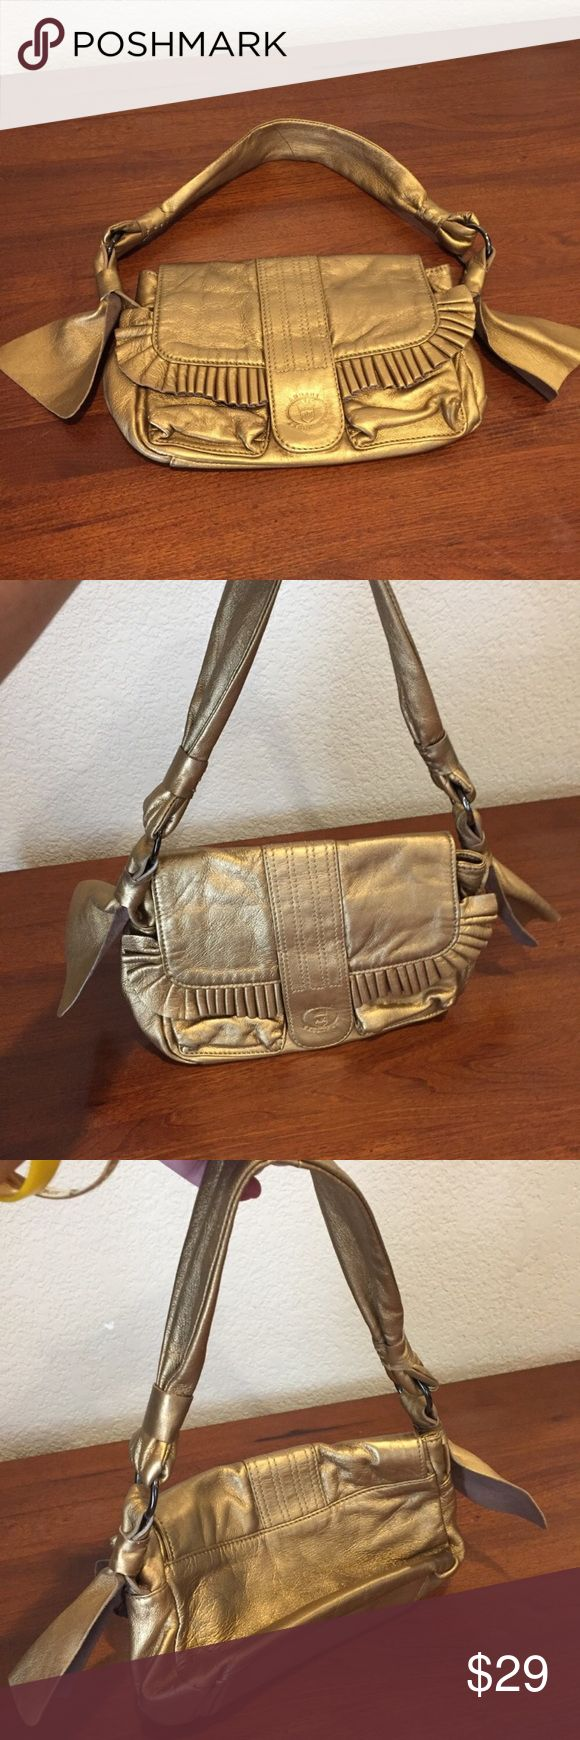 Armani exchange gold metallic leather ruffle bag Armani exchange gold metallic leather ruffle bag great preloved condition super soft leather A/X Armani Exchange Bags